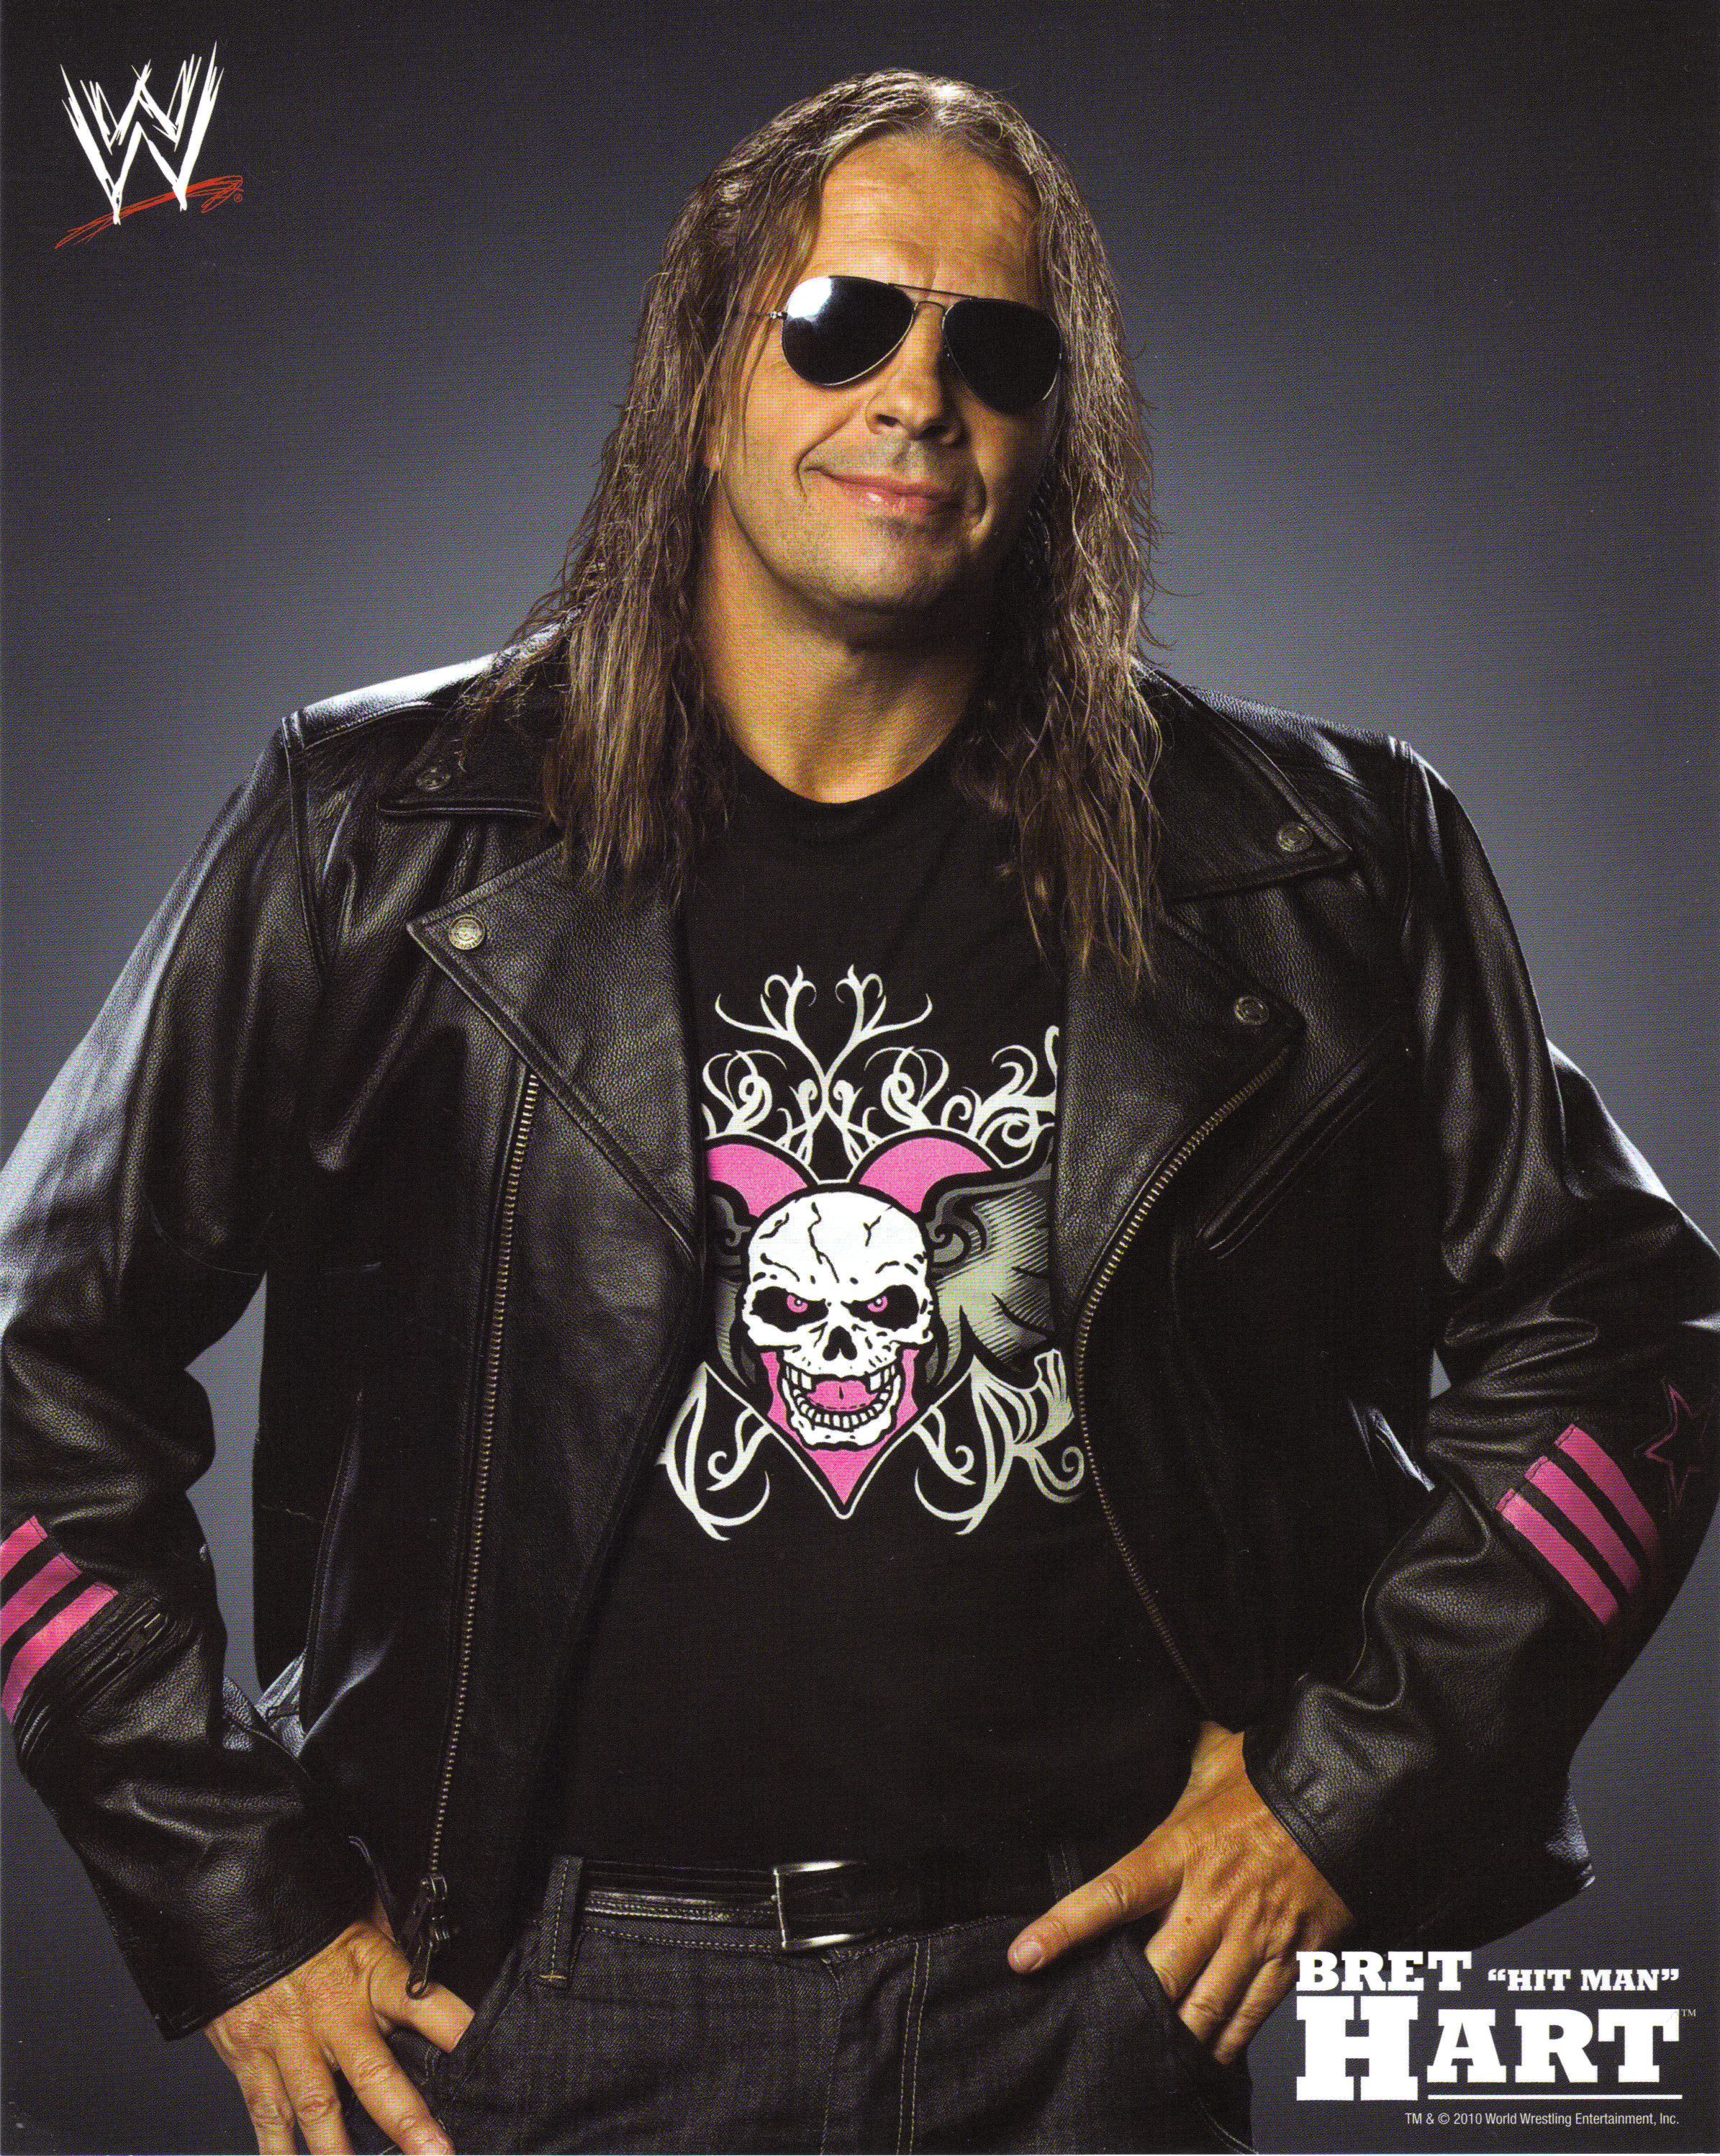 #WWE: Bret Hart 2nd Theme - Hart Attack (HQ + Arena Effects) - YouTube